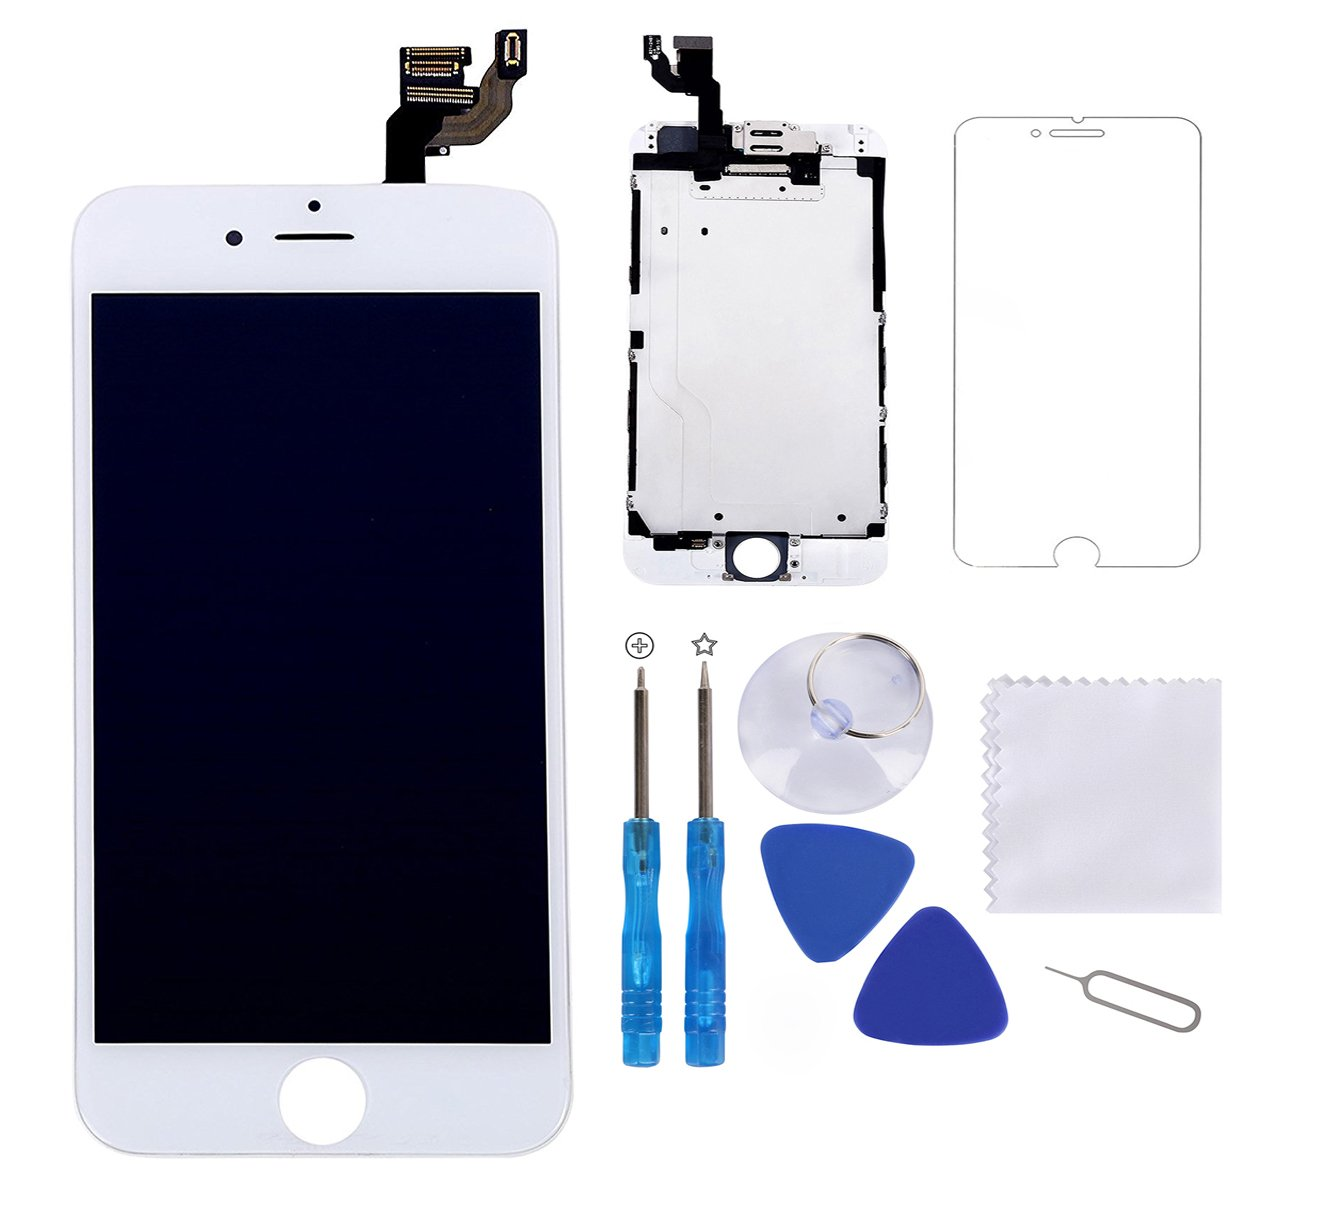 Screen Replacement for iPhone 6 Plus White 5.5'' LCD Display Touch Digitizer Frame Assembly Full Repair Kit,with Proximity Sensor,Ear Speaker,Front Camera,Free Screen Protector,Repair Tools